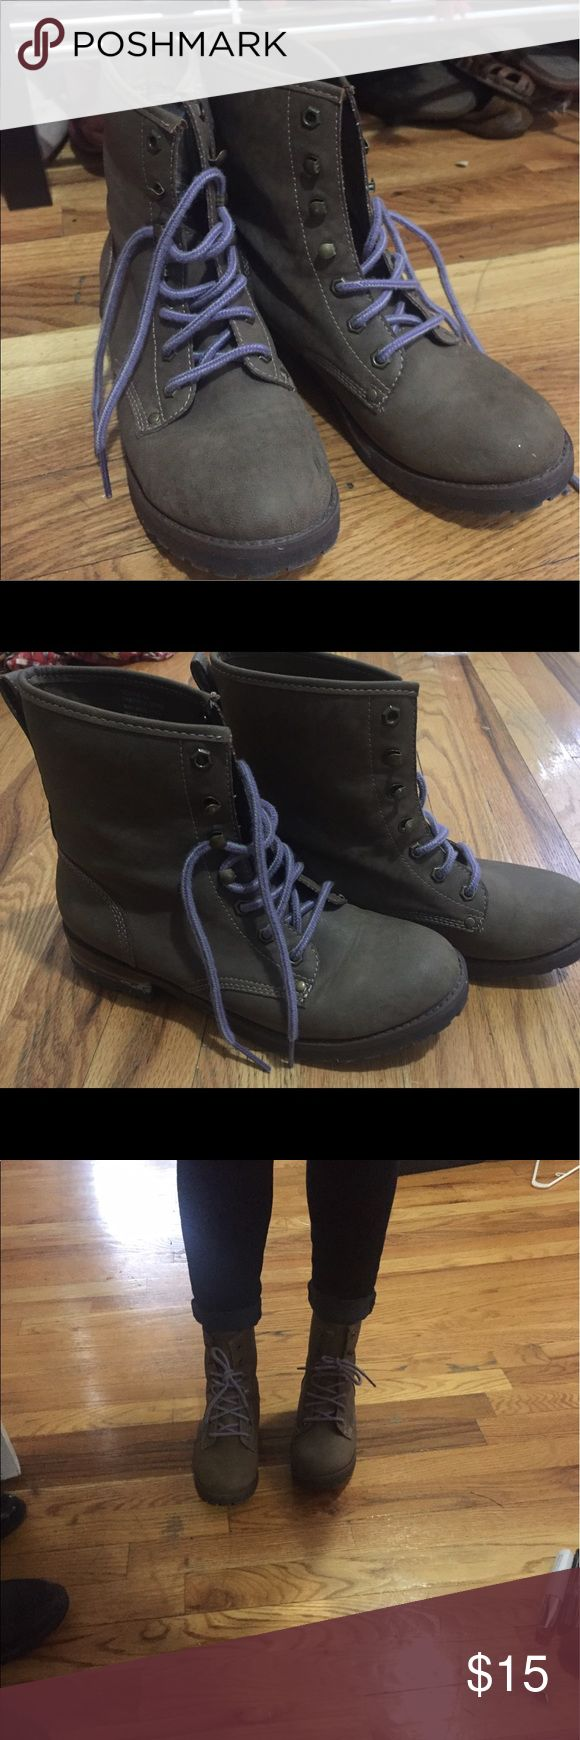 Tan short combat boots Cute boots with purple laces; almost perfect condition; great in all weather. Best offer or bundle//no trades pls! Hard Candy Shoes Combat & Moto Boots